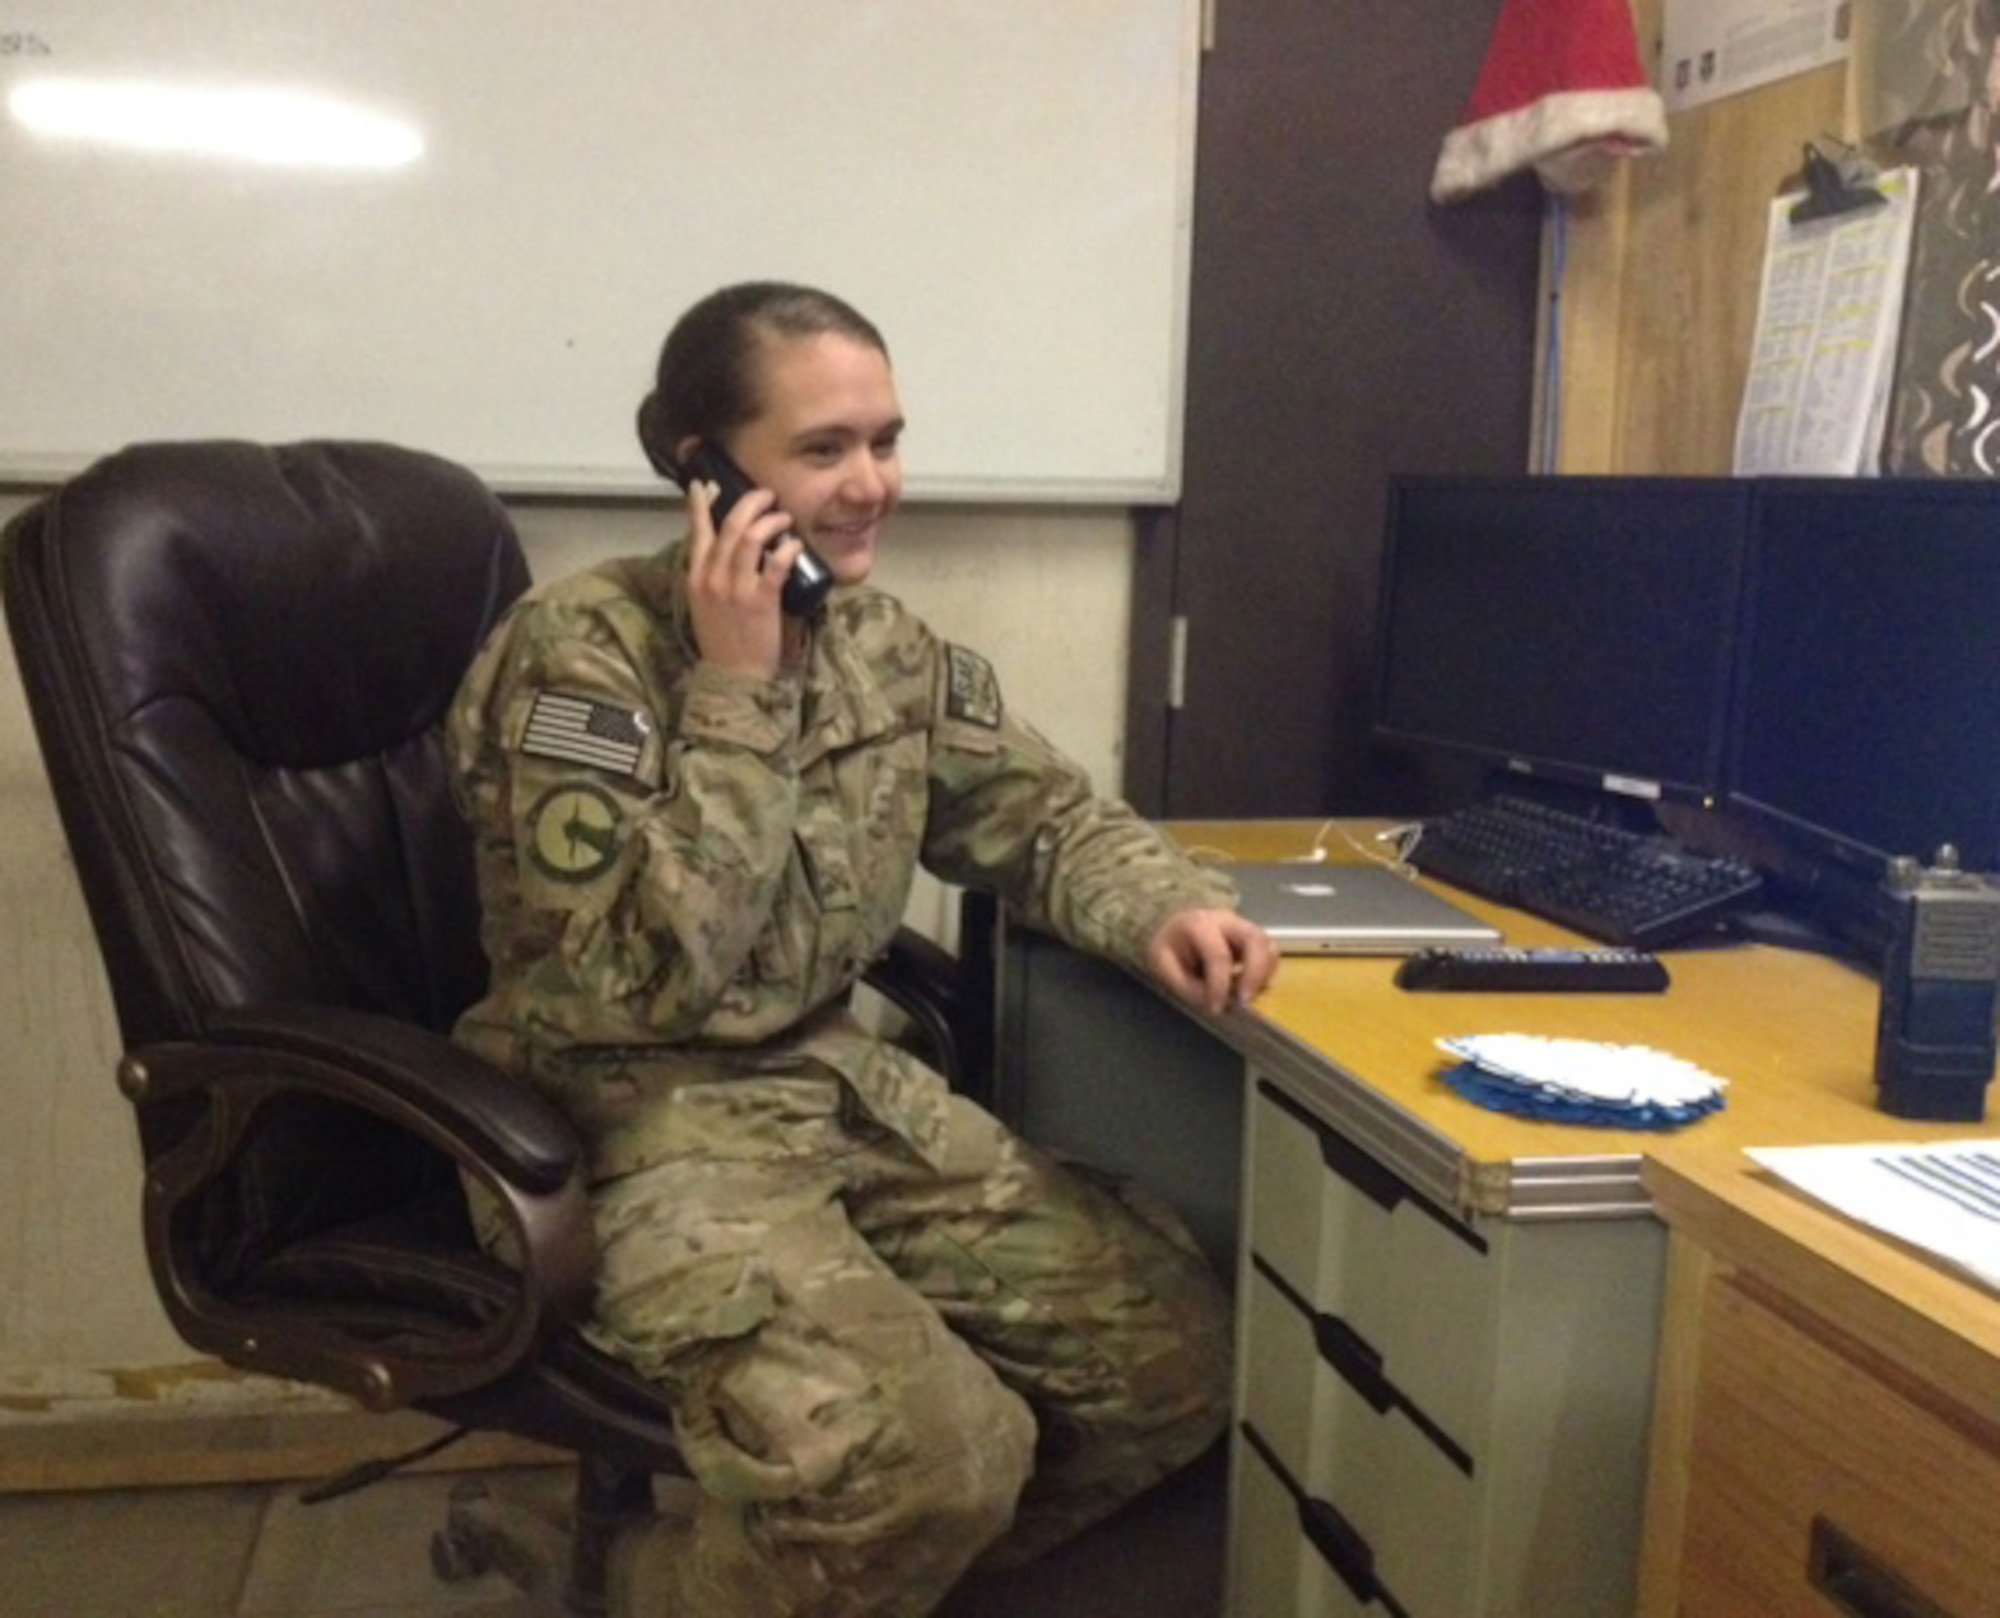 Airman 1st Class Ashli Six receives a phone call from Secretary of the Air Force Deborah Lee James, Dec. 31, 2013 at Bagram Airfield, Afghanistan. The secretary called to wish deployed Airmen a happy new year and let them know the Air Force leadership team was thinking about them and their families. Six is a native of Green, Ohio. (Courtesy Photo)